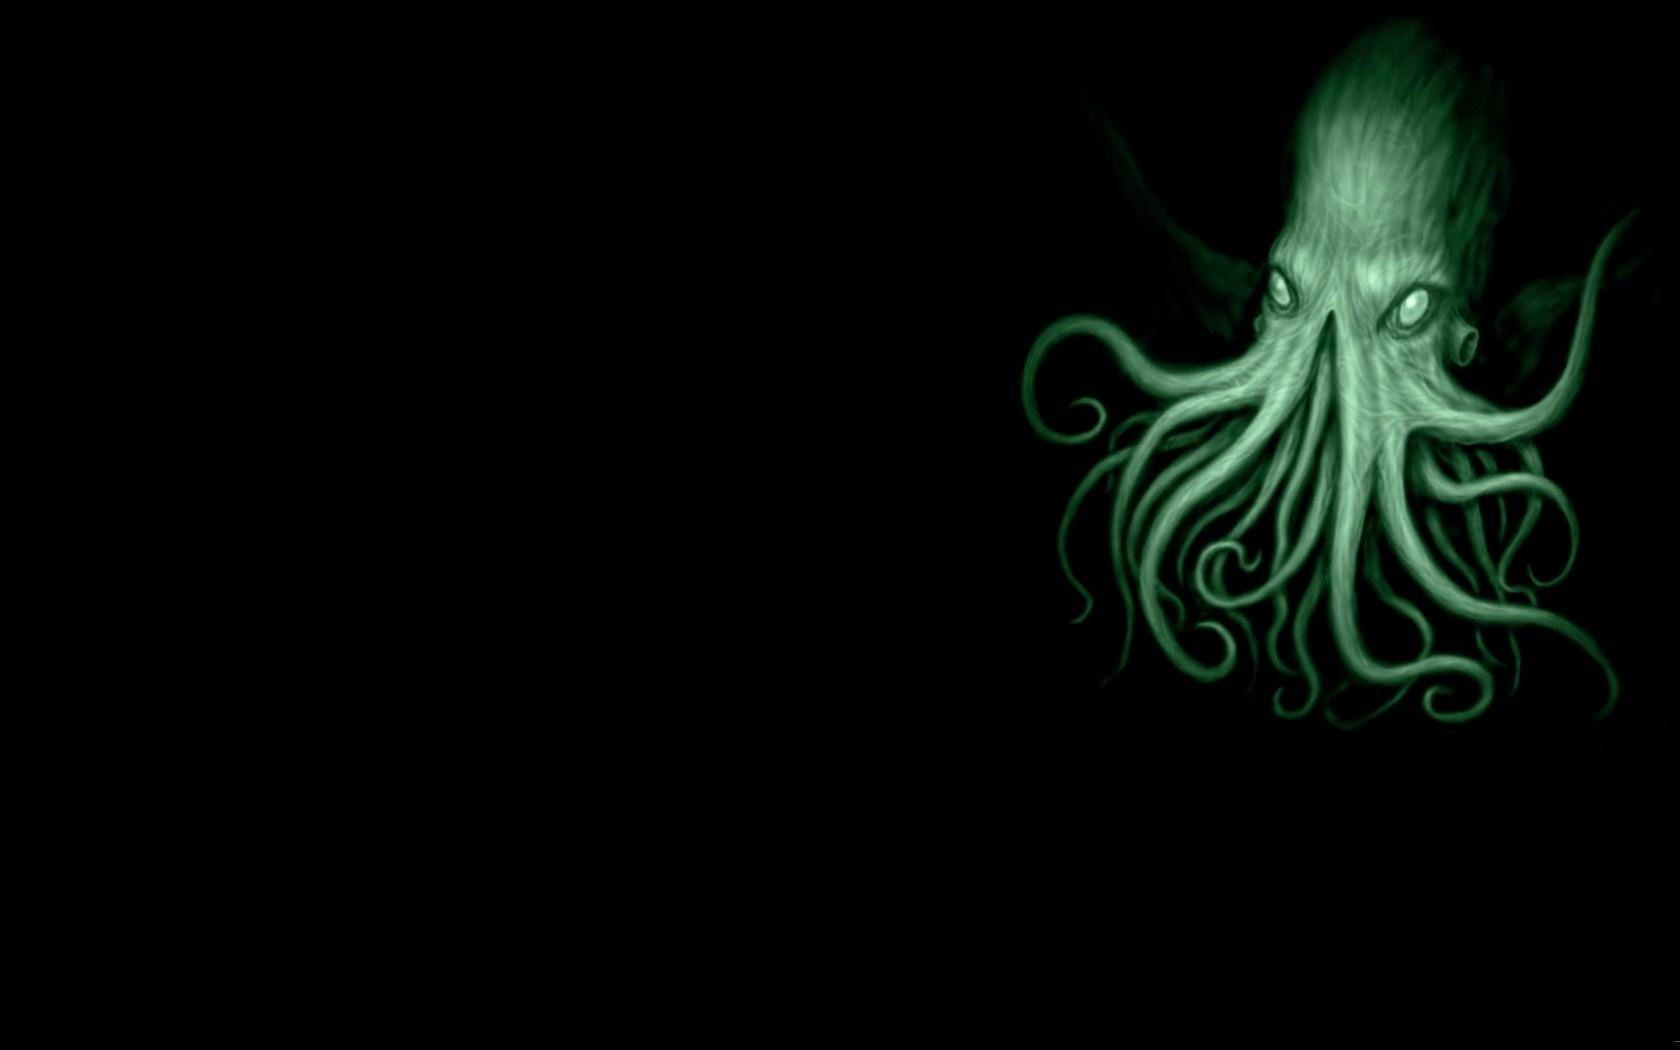 Cthulhu Wallpapers Wallpaper Cave HD Wallpapers Download Free Images Wallpaper [1000image.com]